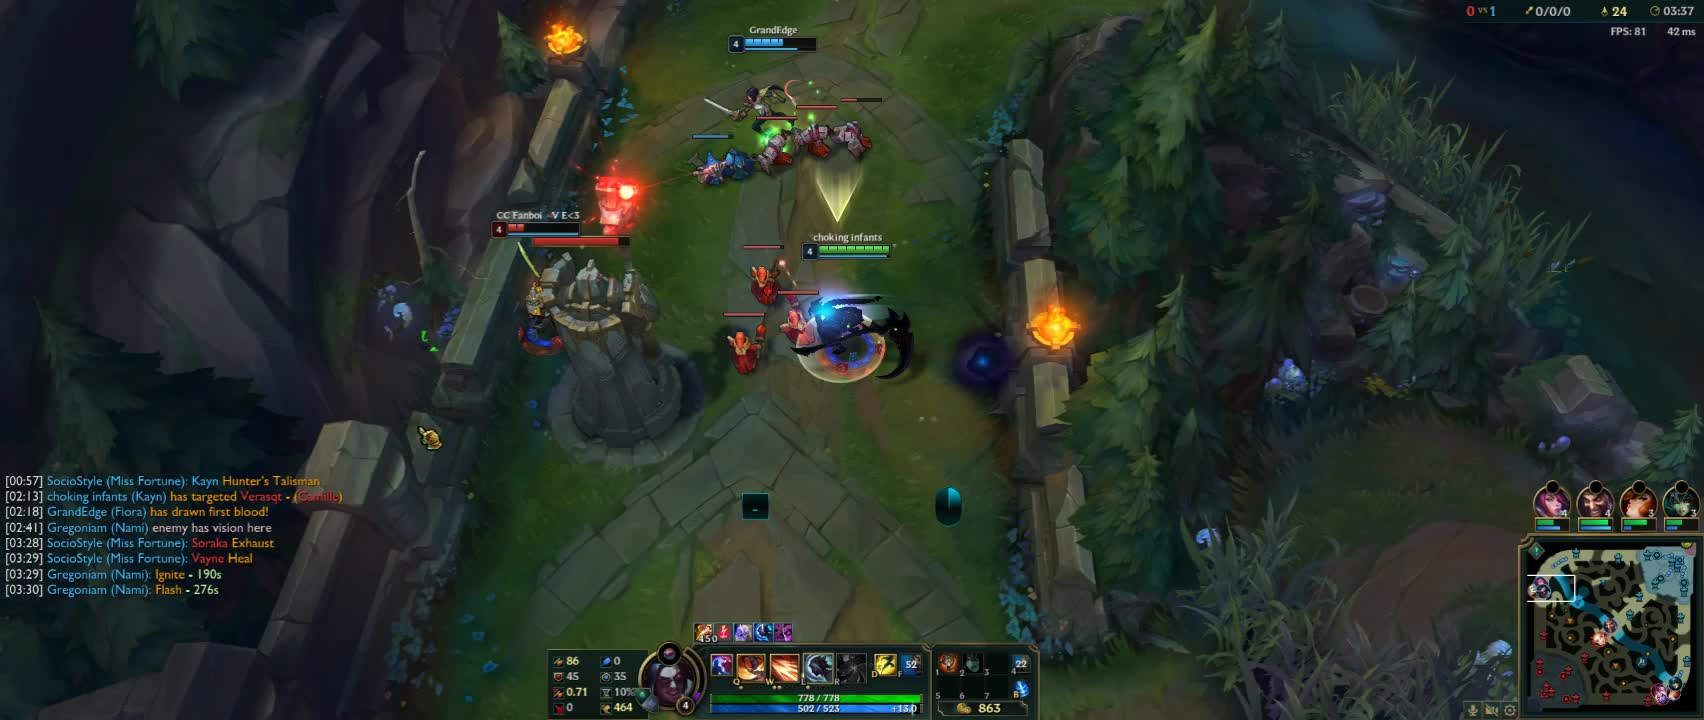 Assist, Gaming, Kayn, LeagueOfLegends, Overwolf, Win, Check out my video! LeagueOfLegends | Captured by Overwolf GIFs